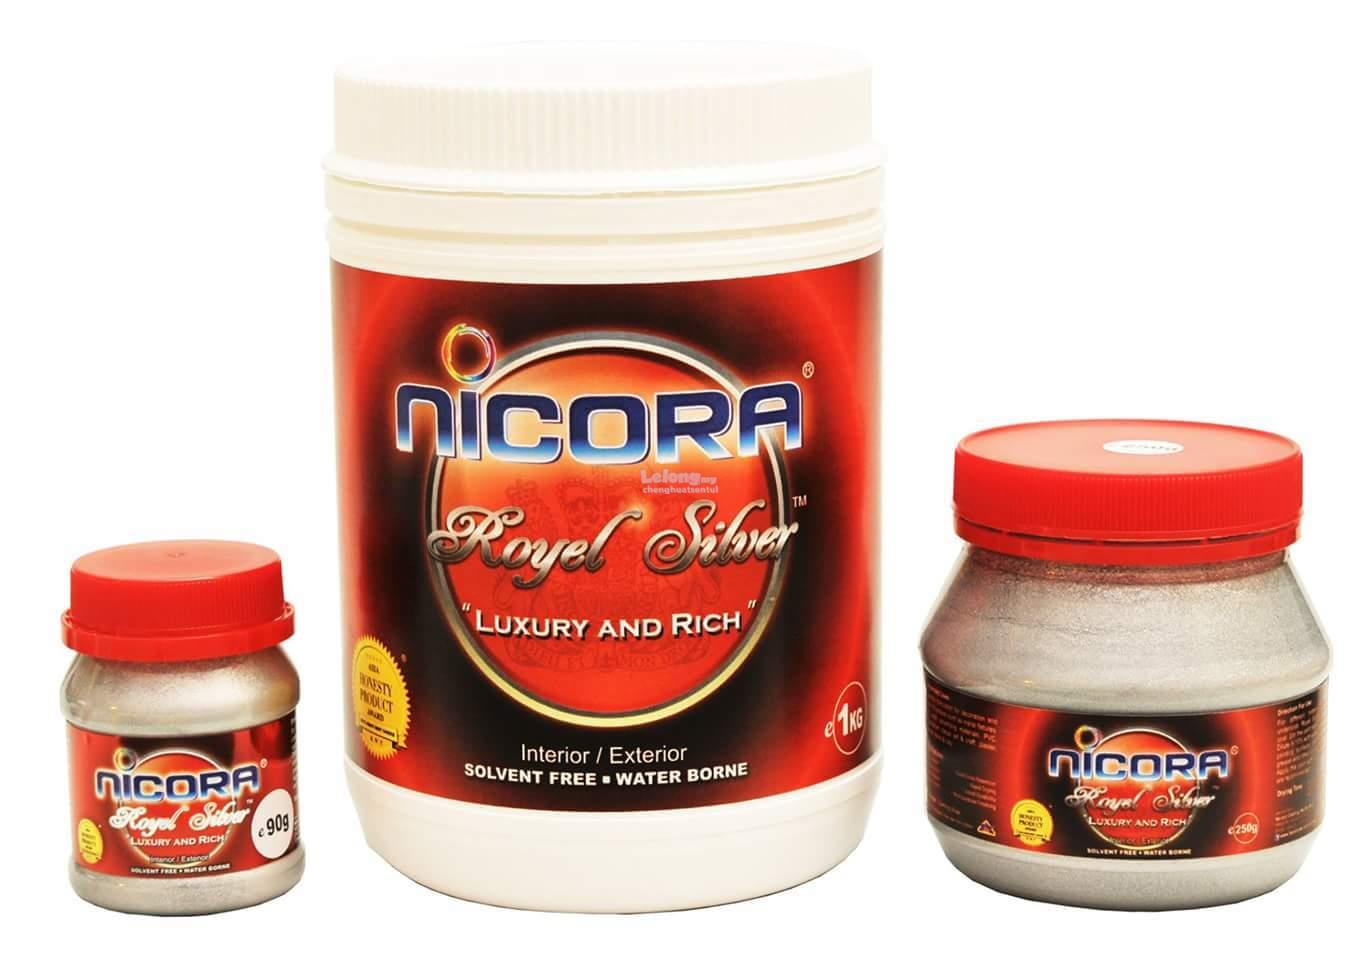 90G NICORA ROYAL SILVER PAINT (WATER BORNE)